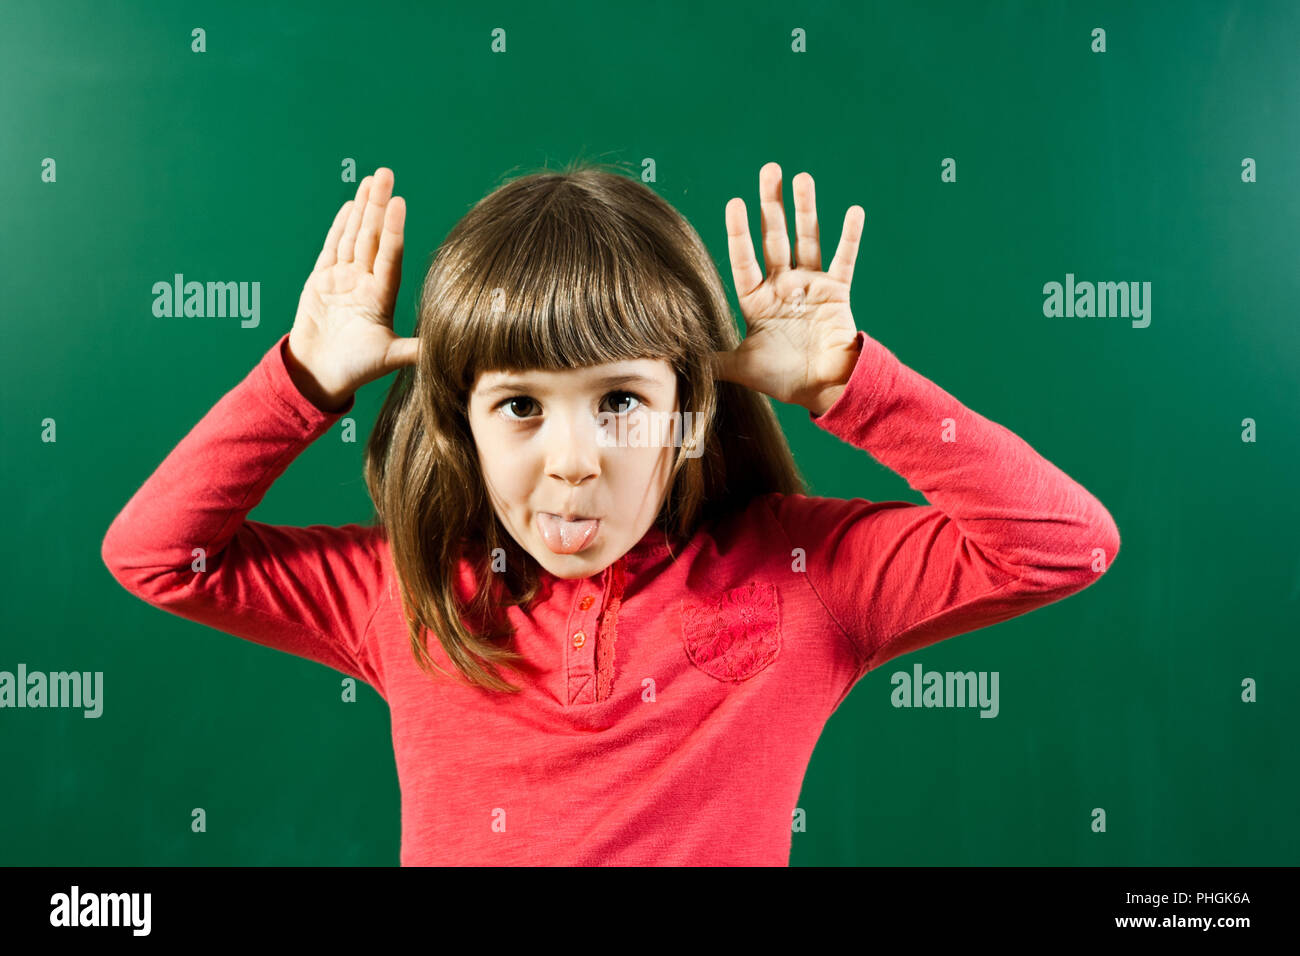 Child sticking Out Tongue - Stock Image